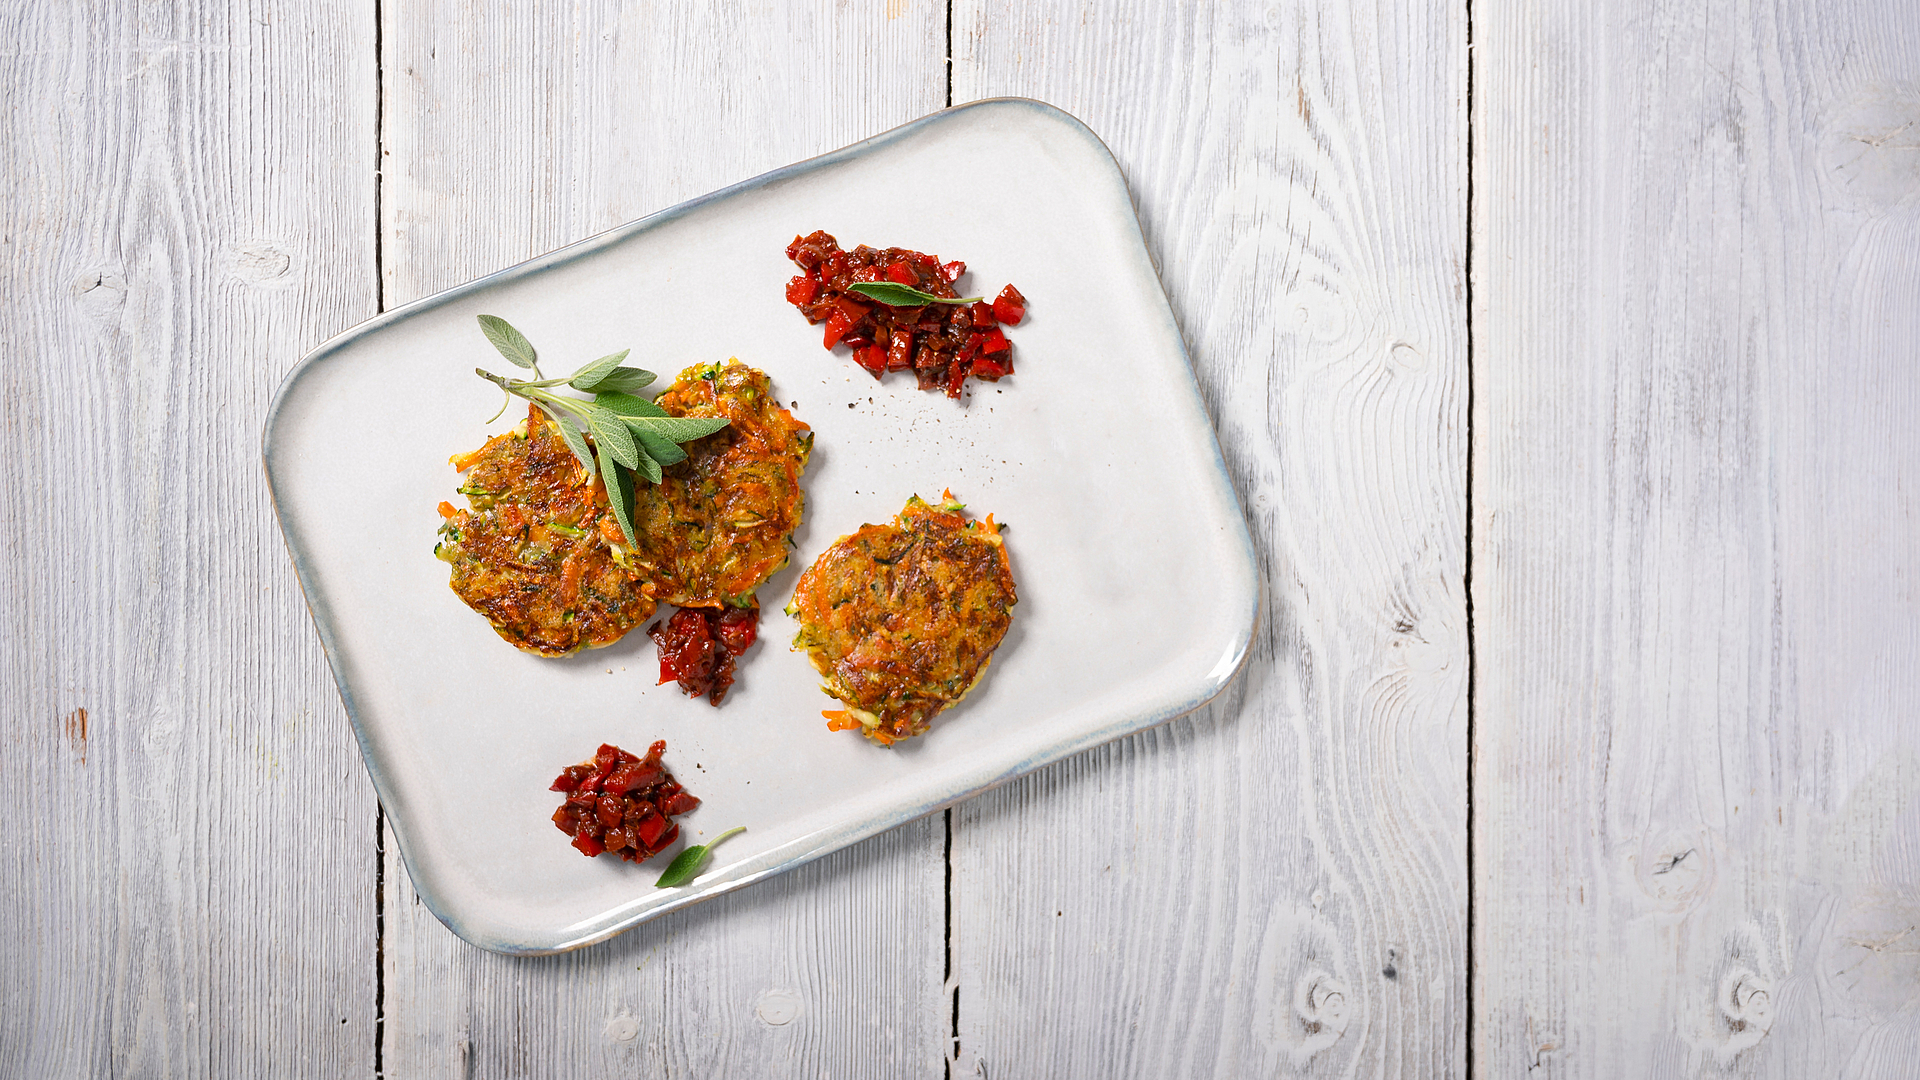 Courgette fritters with red pepper sugo